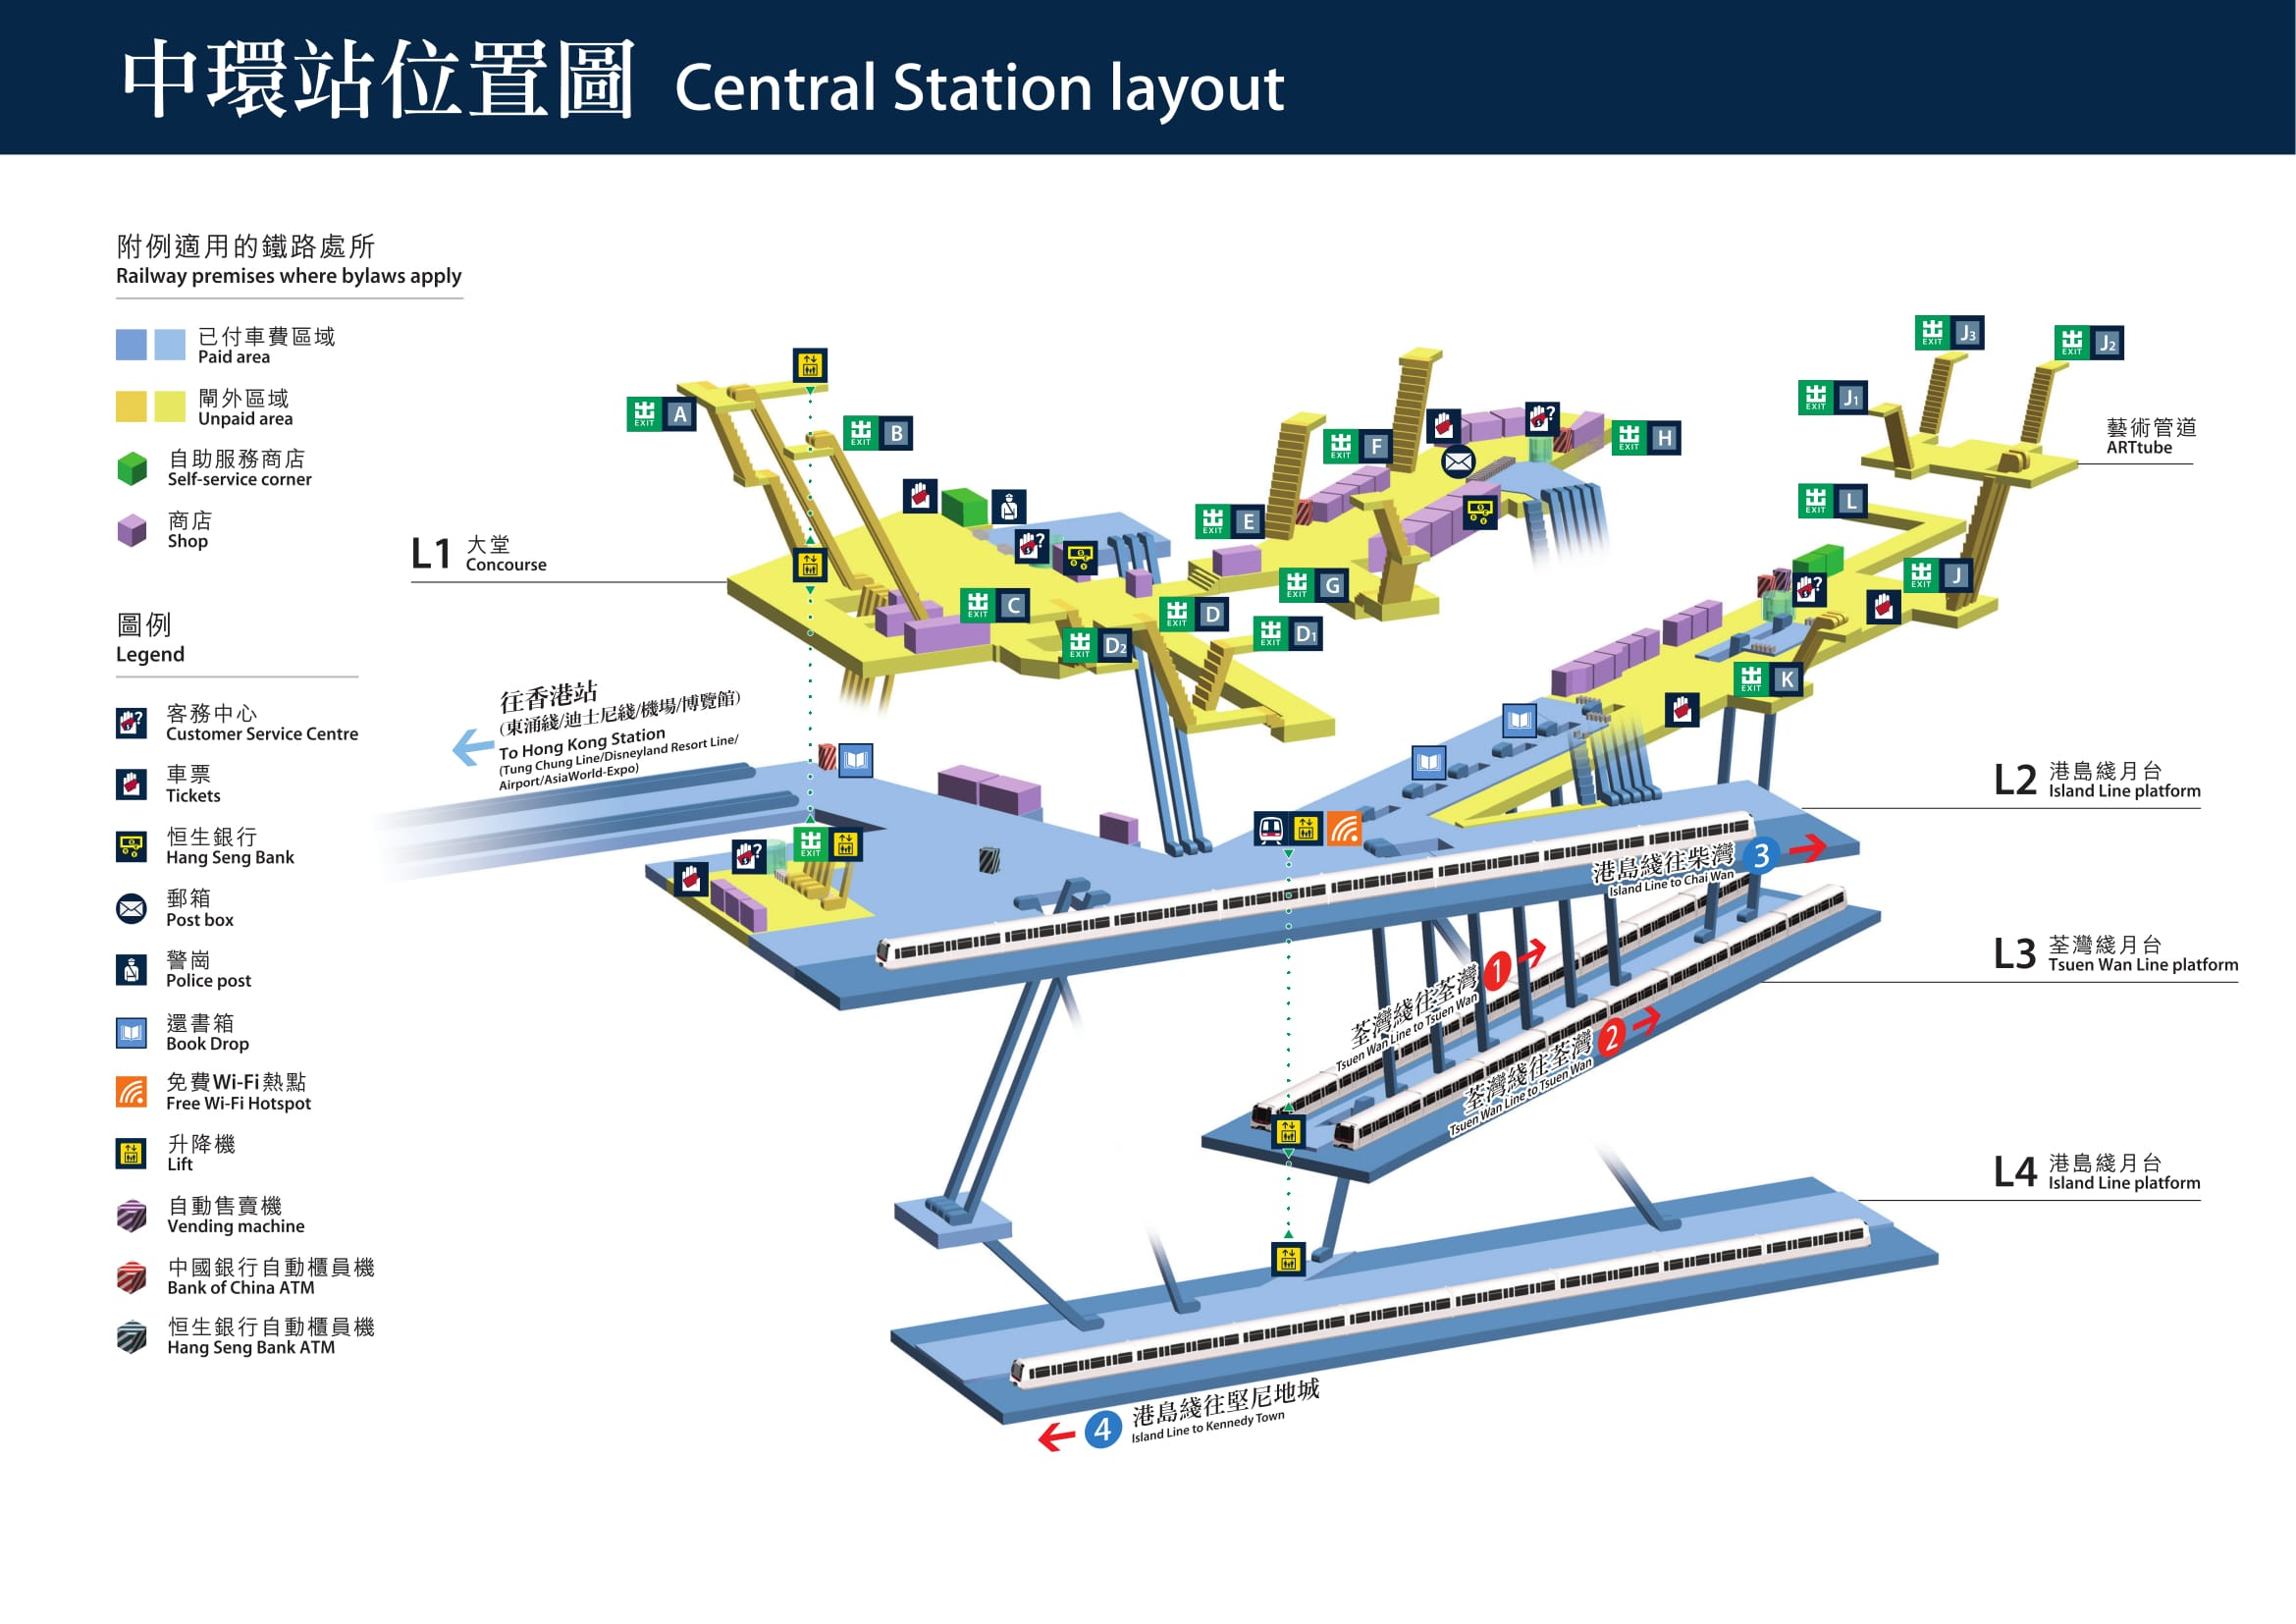 MTR Central station layout diagram 2017 - Checkerboard Hill